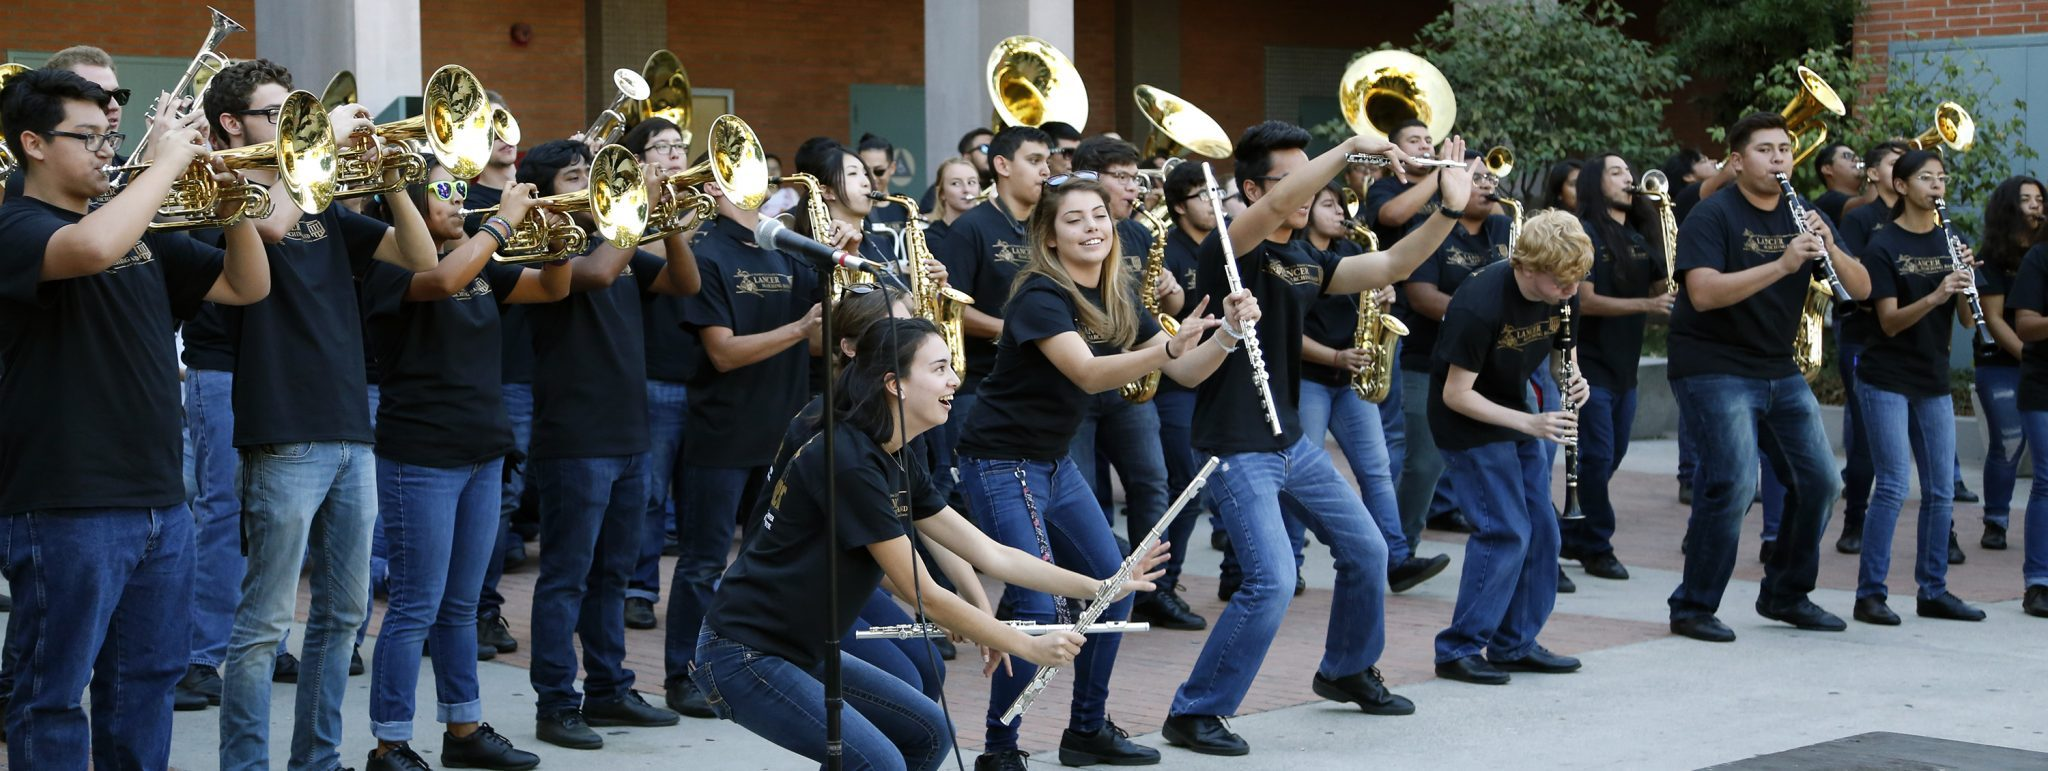 """Kathryn Zamudio/Courier - Soloist Bobby """"Speak Softly, Love"""" from """"The Godfather"""" in Italian and English during the Homecoming Pep Rally outside of the Catherine J. Robbins Building at PCC on Thursday, Nov. 10."""